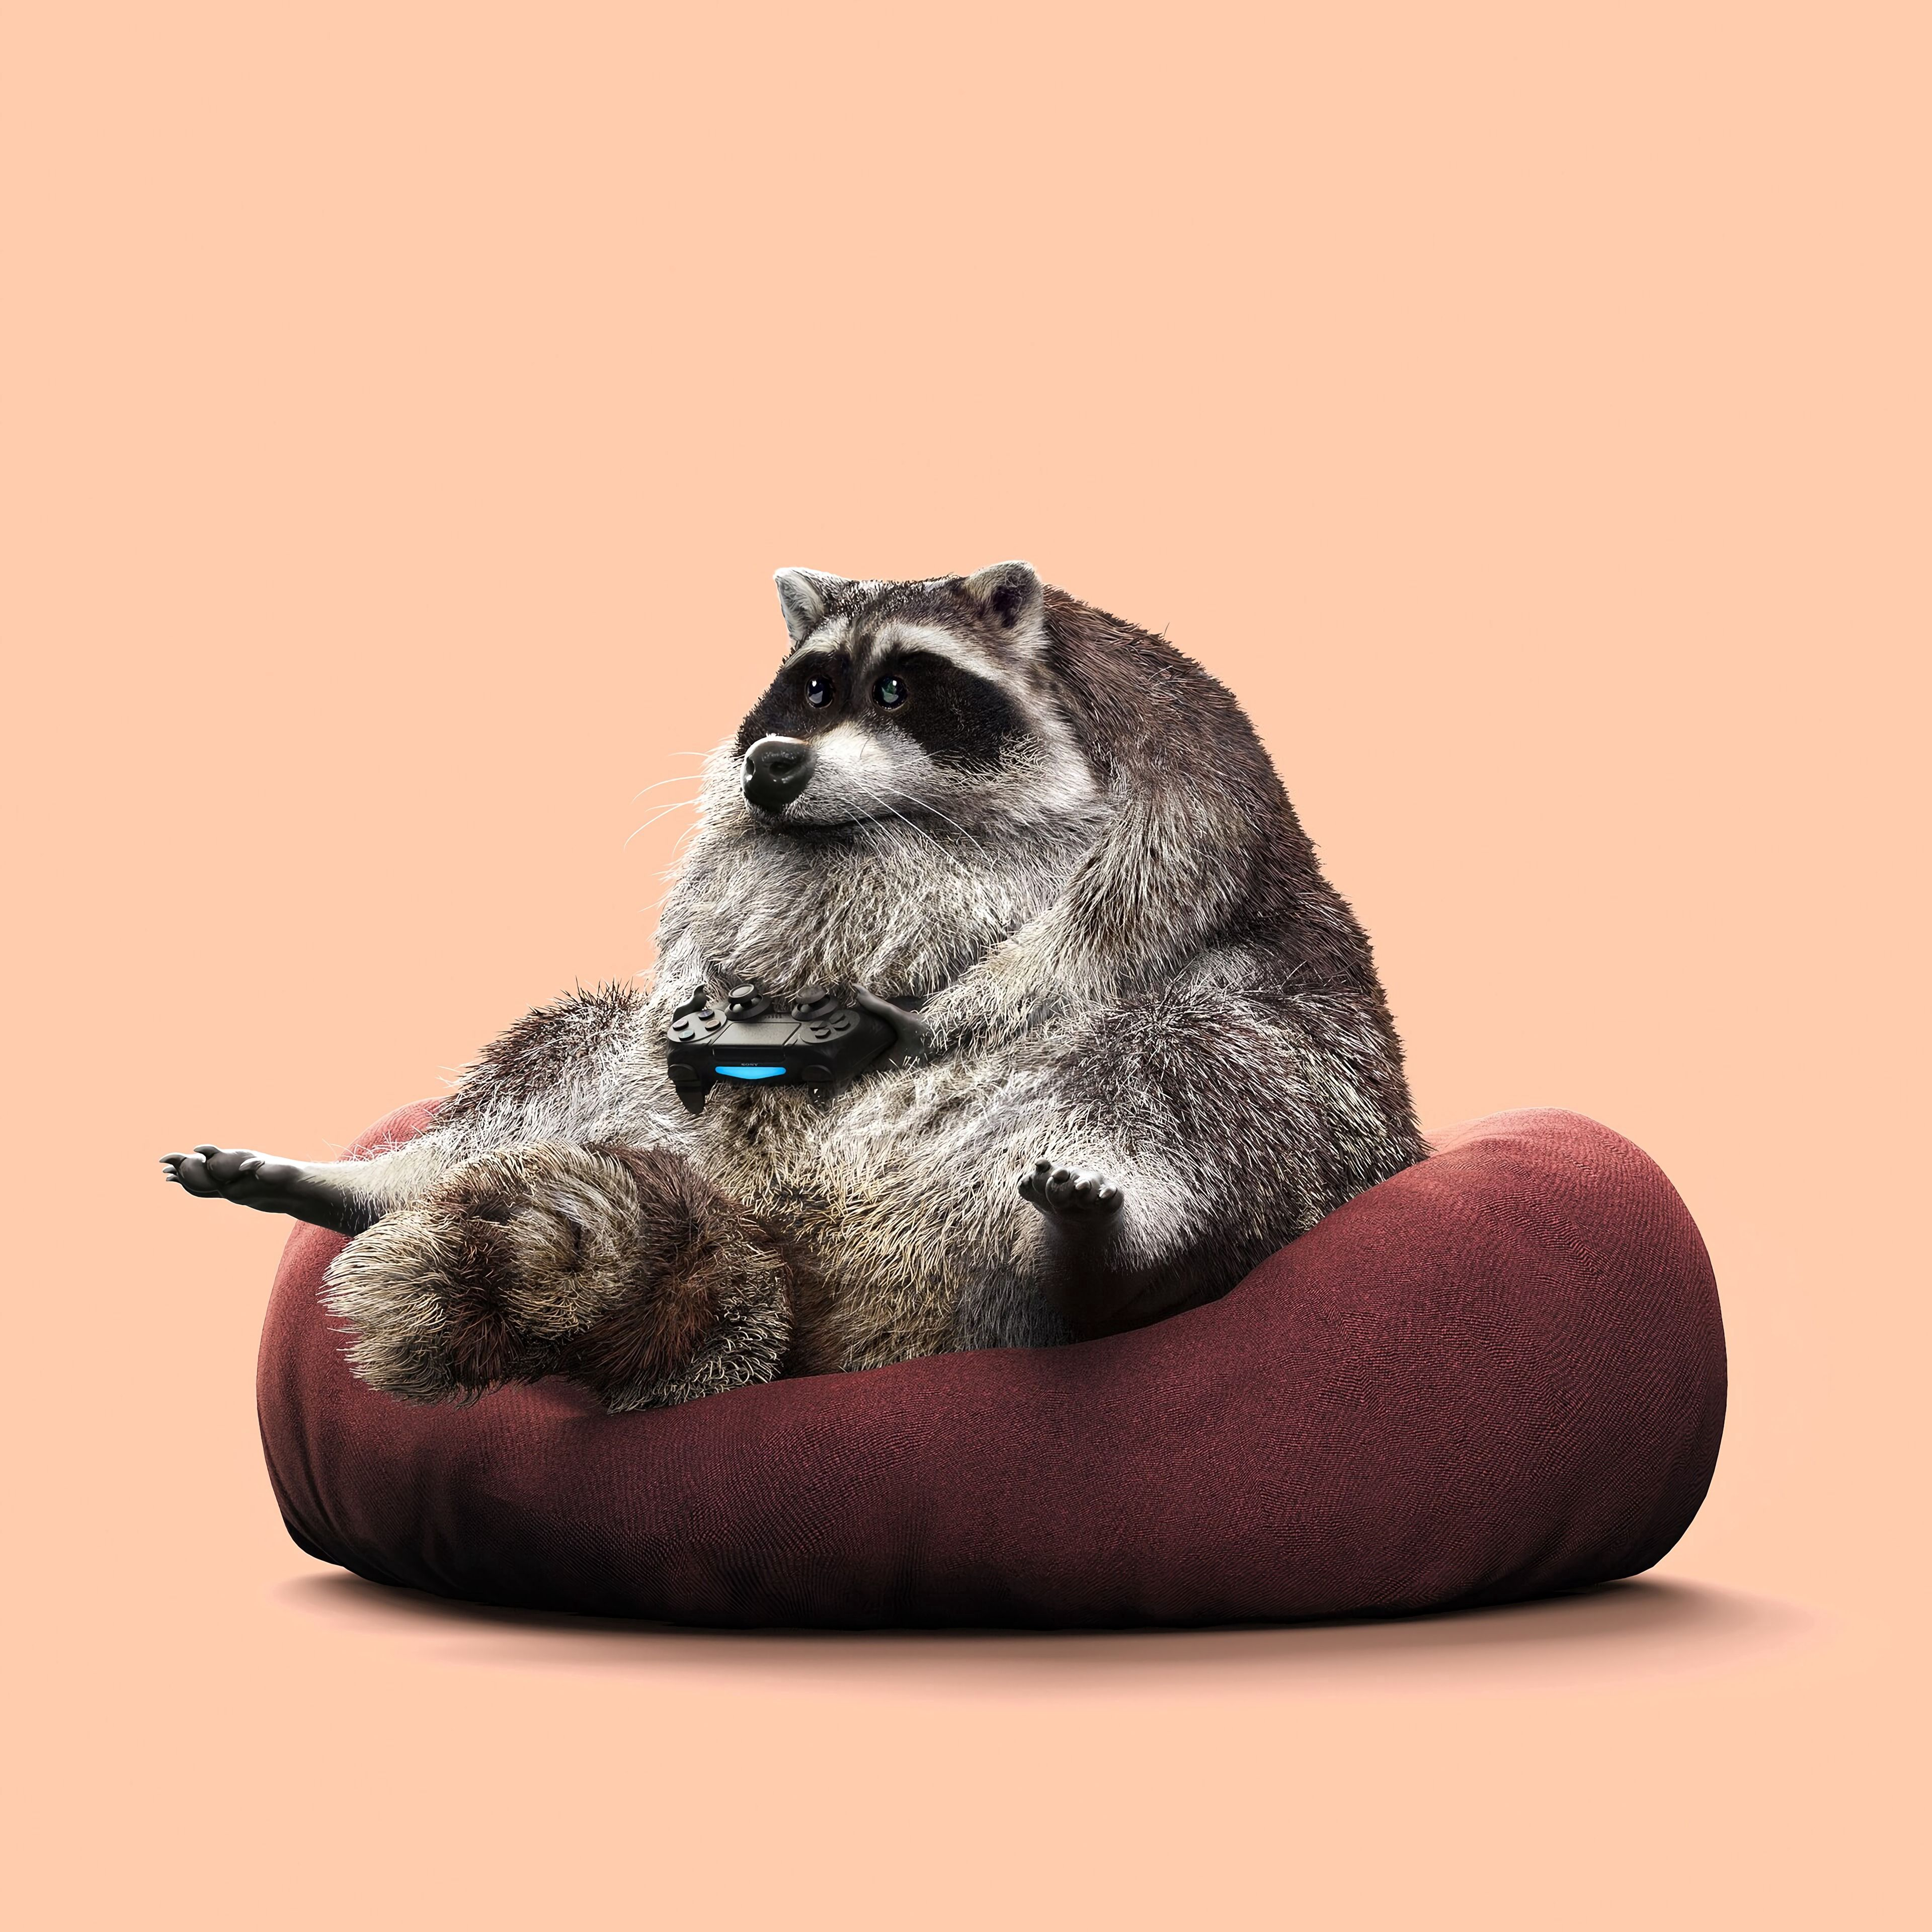 108462 Screensavers and Wallpapers Raccoon for phone. Download Funny, Gamer, Miscellanea, Miscellaneous, Play, Raccoon, Joystick, Controller, Gamepad pictures for free